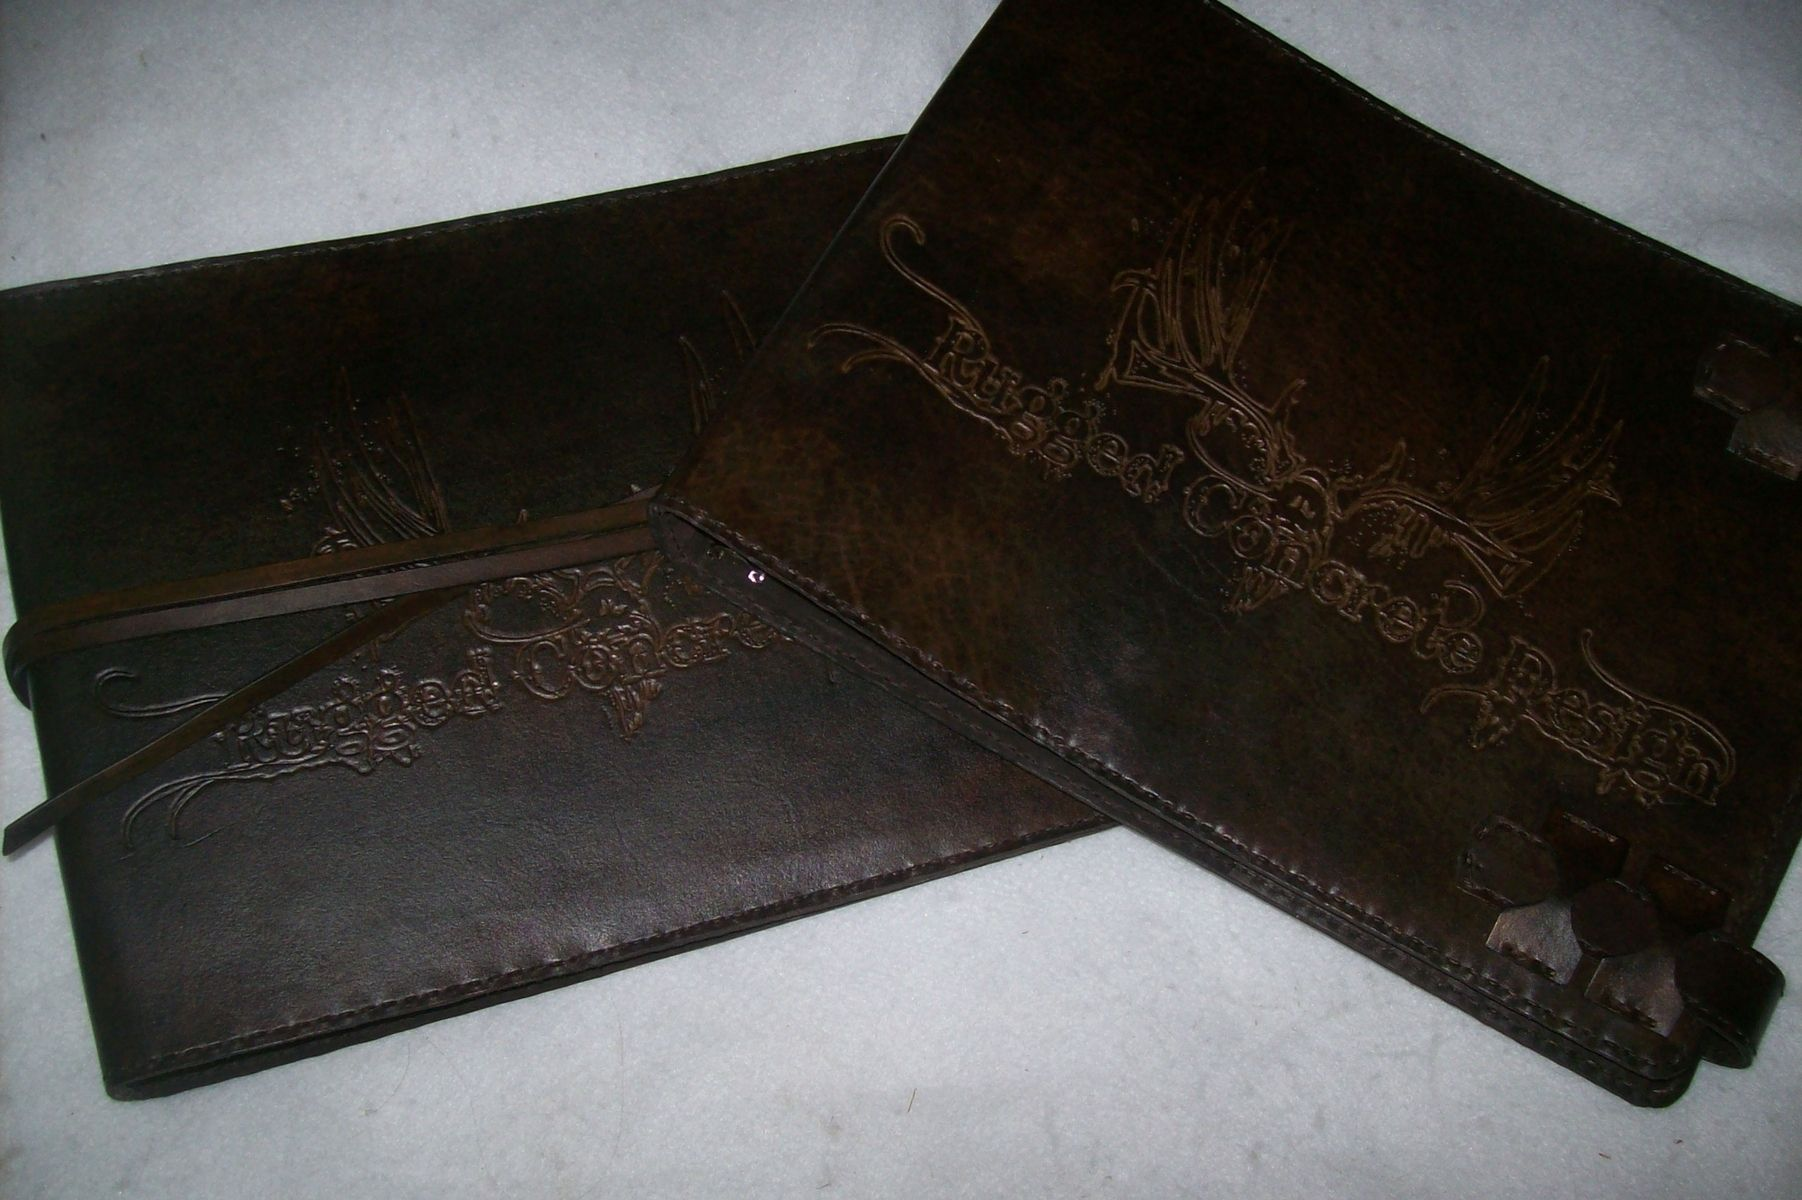 Business Checkbook Covers : Buy handmade custom leather business checkbook covers